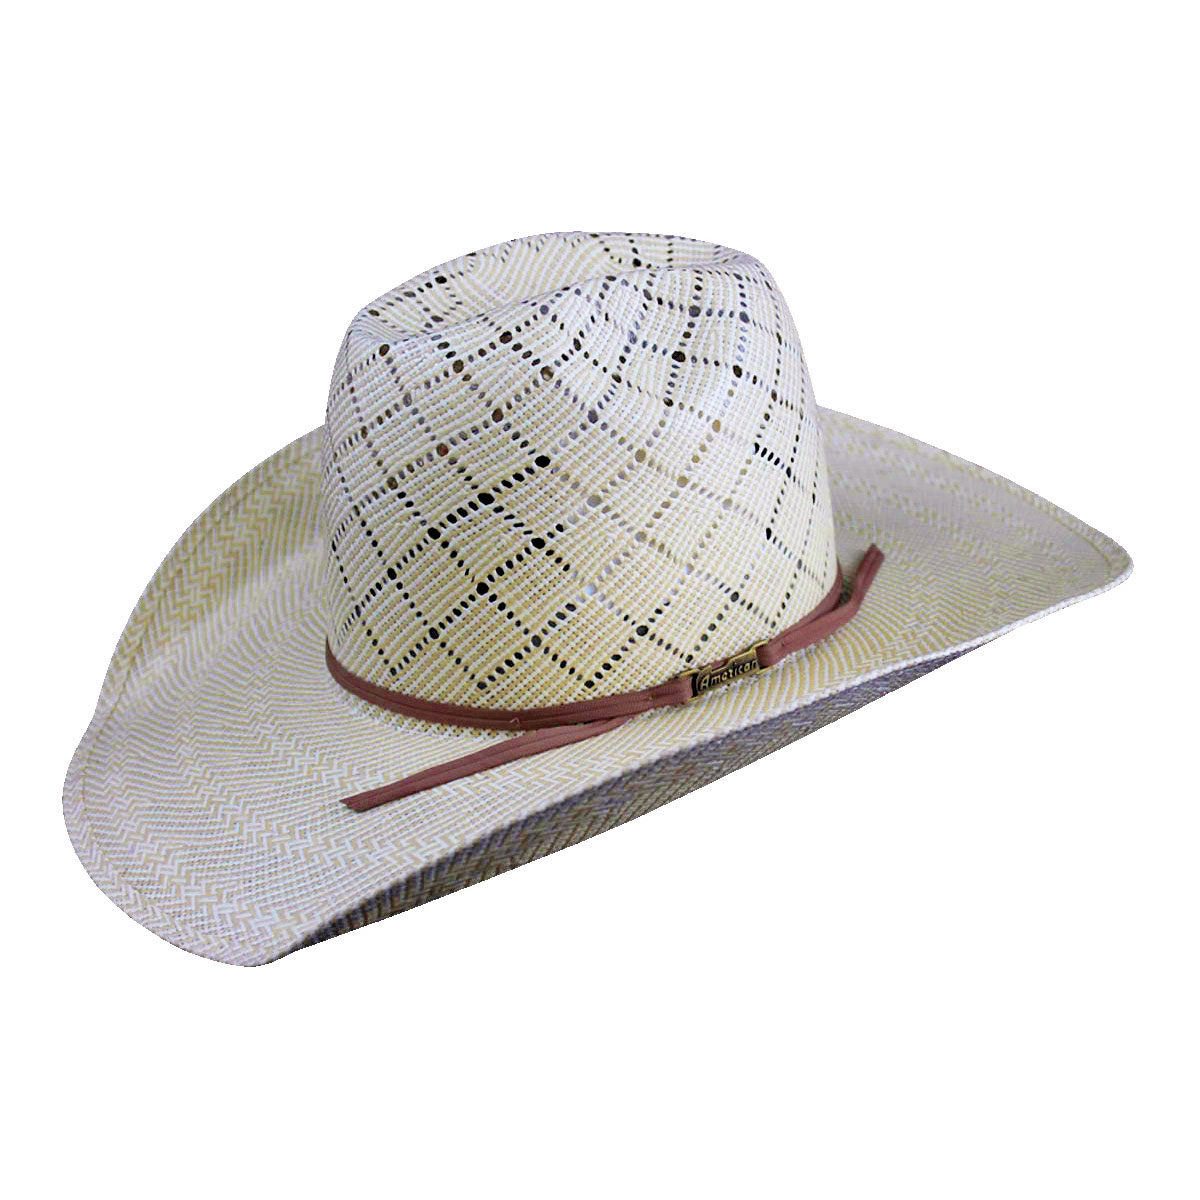 ae8bde526c4761 Pungo Ridge - American Hat Co 20☆ 5050 Patchwork Crossbred Straw ...